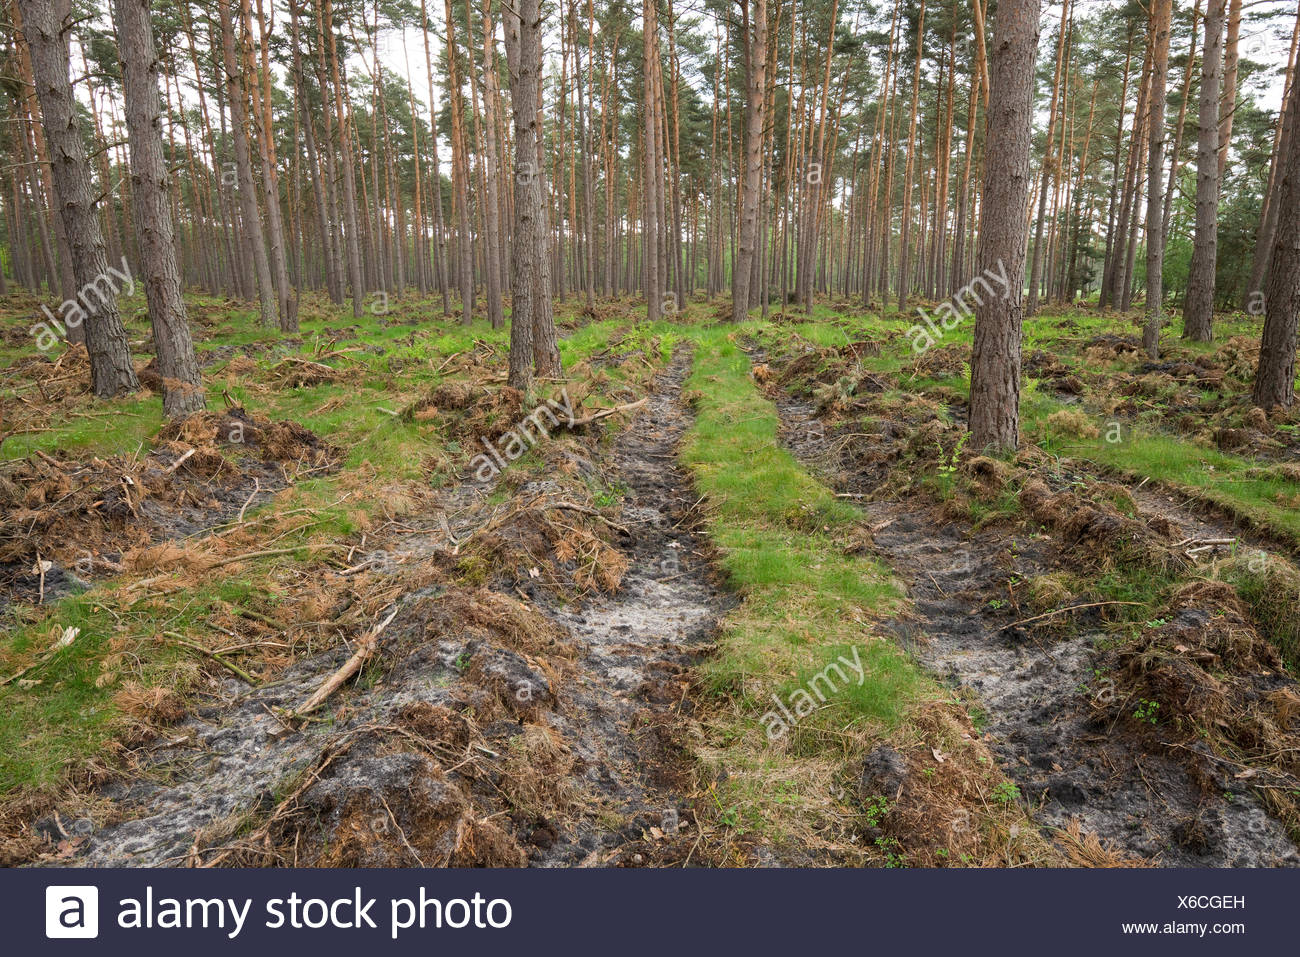 Soil preparation for natural regeneration, exposing the mineral soil in a pine forest, Pines (Pinus sylvestris), Lower Saxony - Stock Image